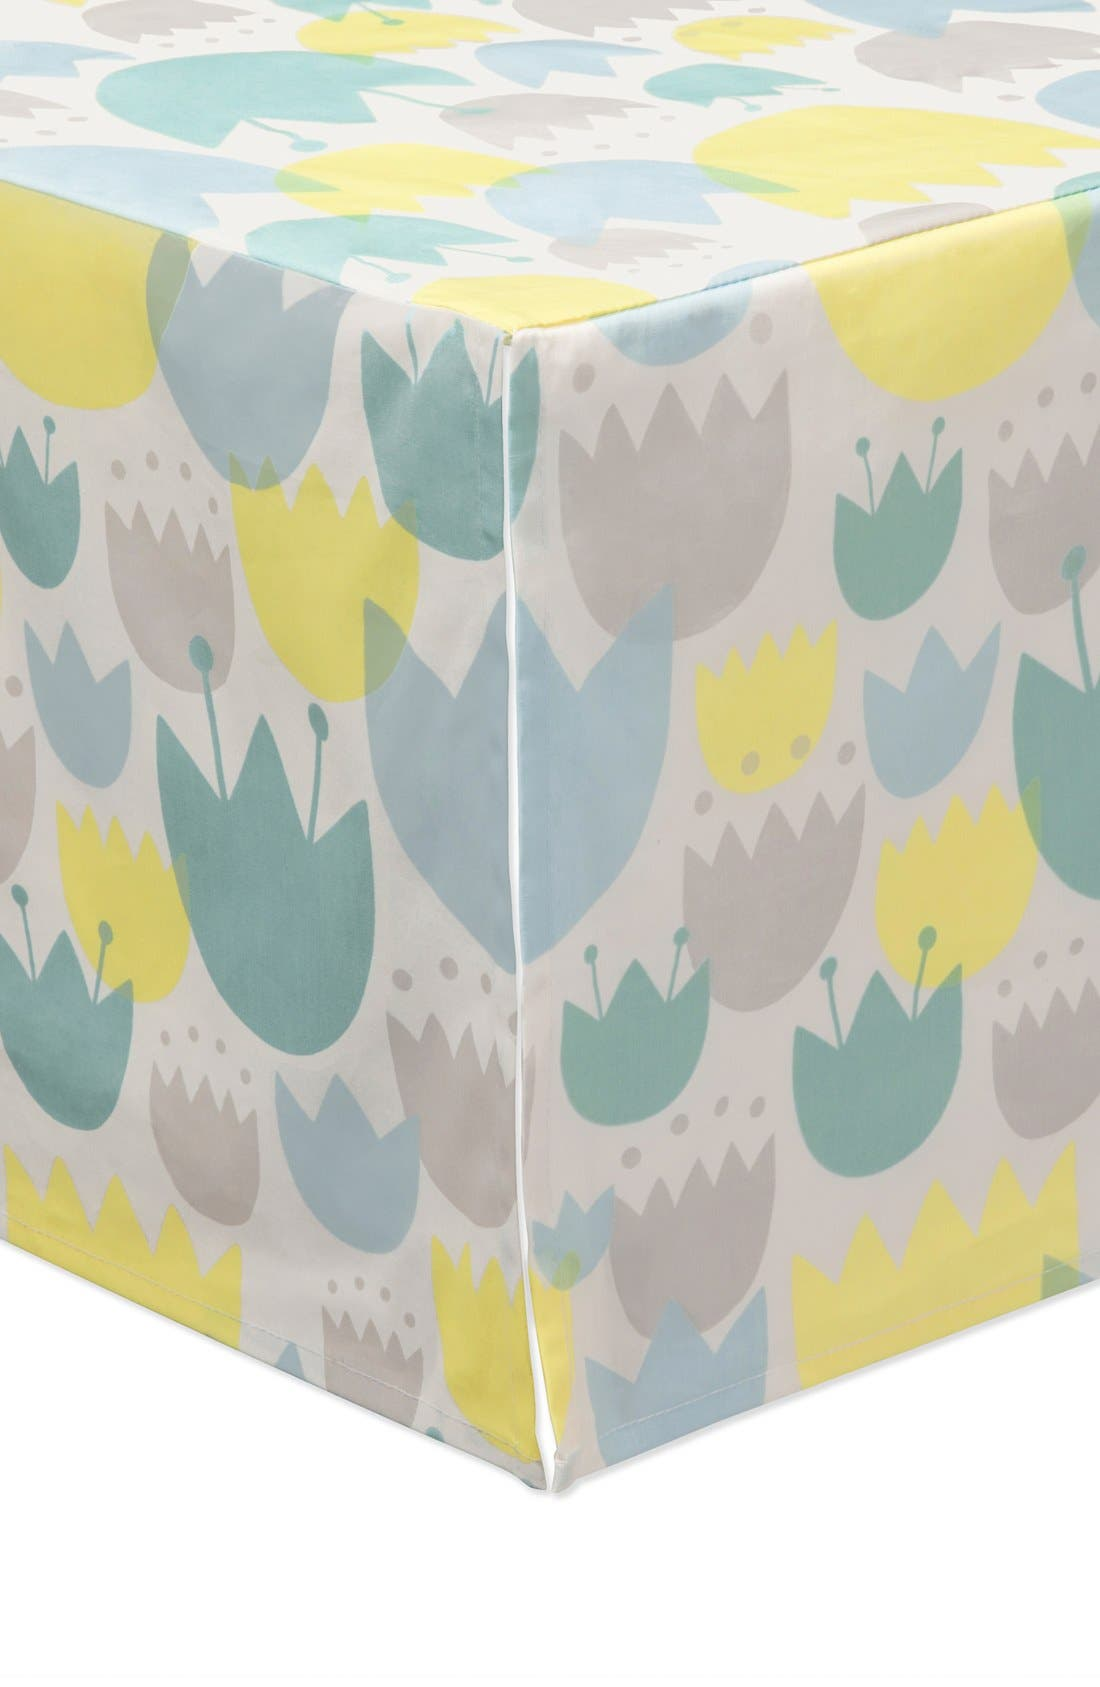 'Garden' Crib Sheet, Crib Skirt, Play Blanket, Changing Pad Cover, Stroller Blanket & Wall Decals,                             Alternate thumbnail 6, color,                             BLUE